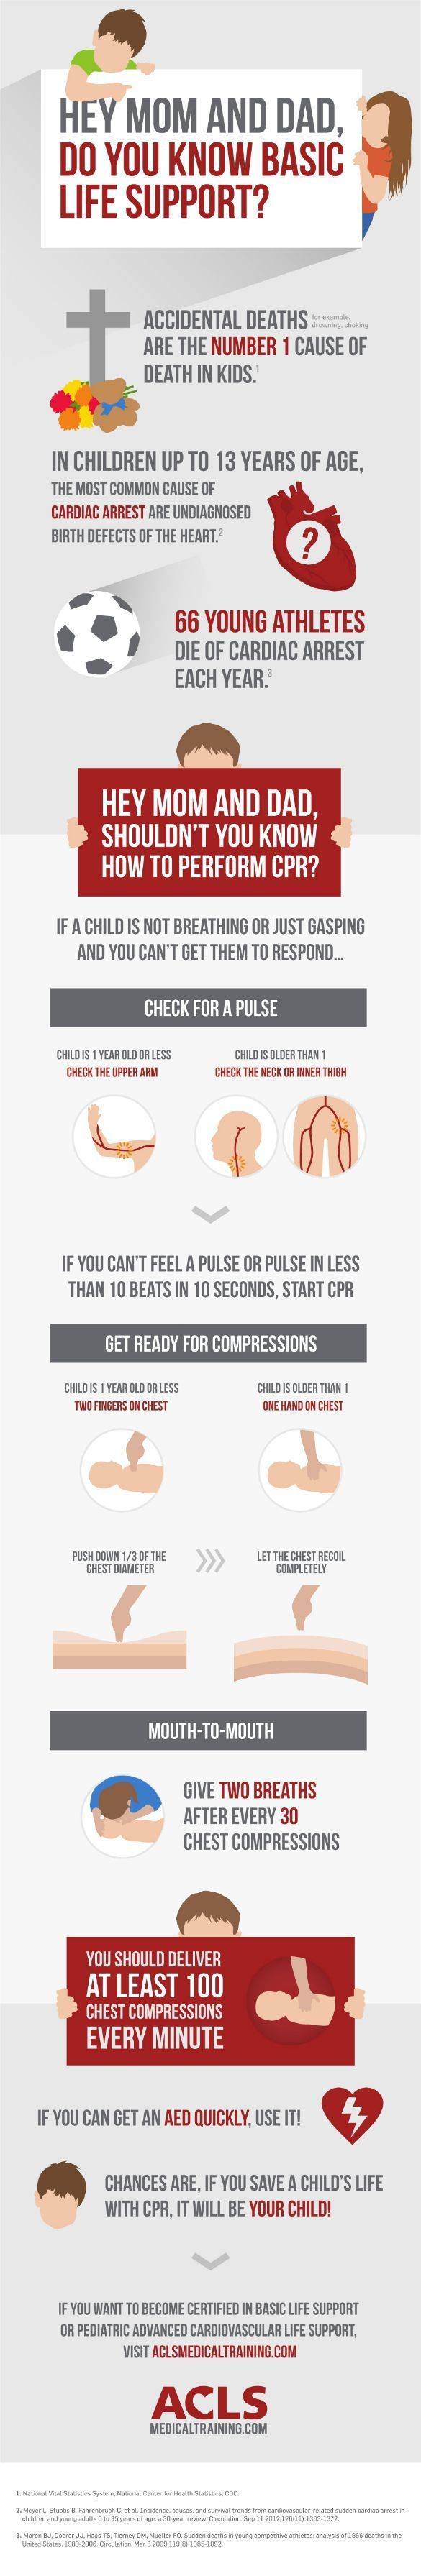 Need advanced cardiac life support acls recertification class now need advanced cardiac life support acls recertification class now cpr nashville pinterest higher education 1betcityfo Choice Image